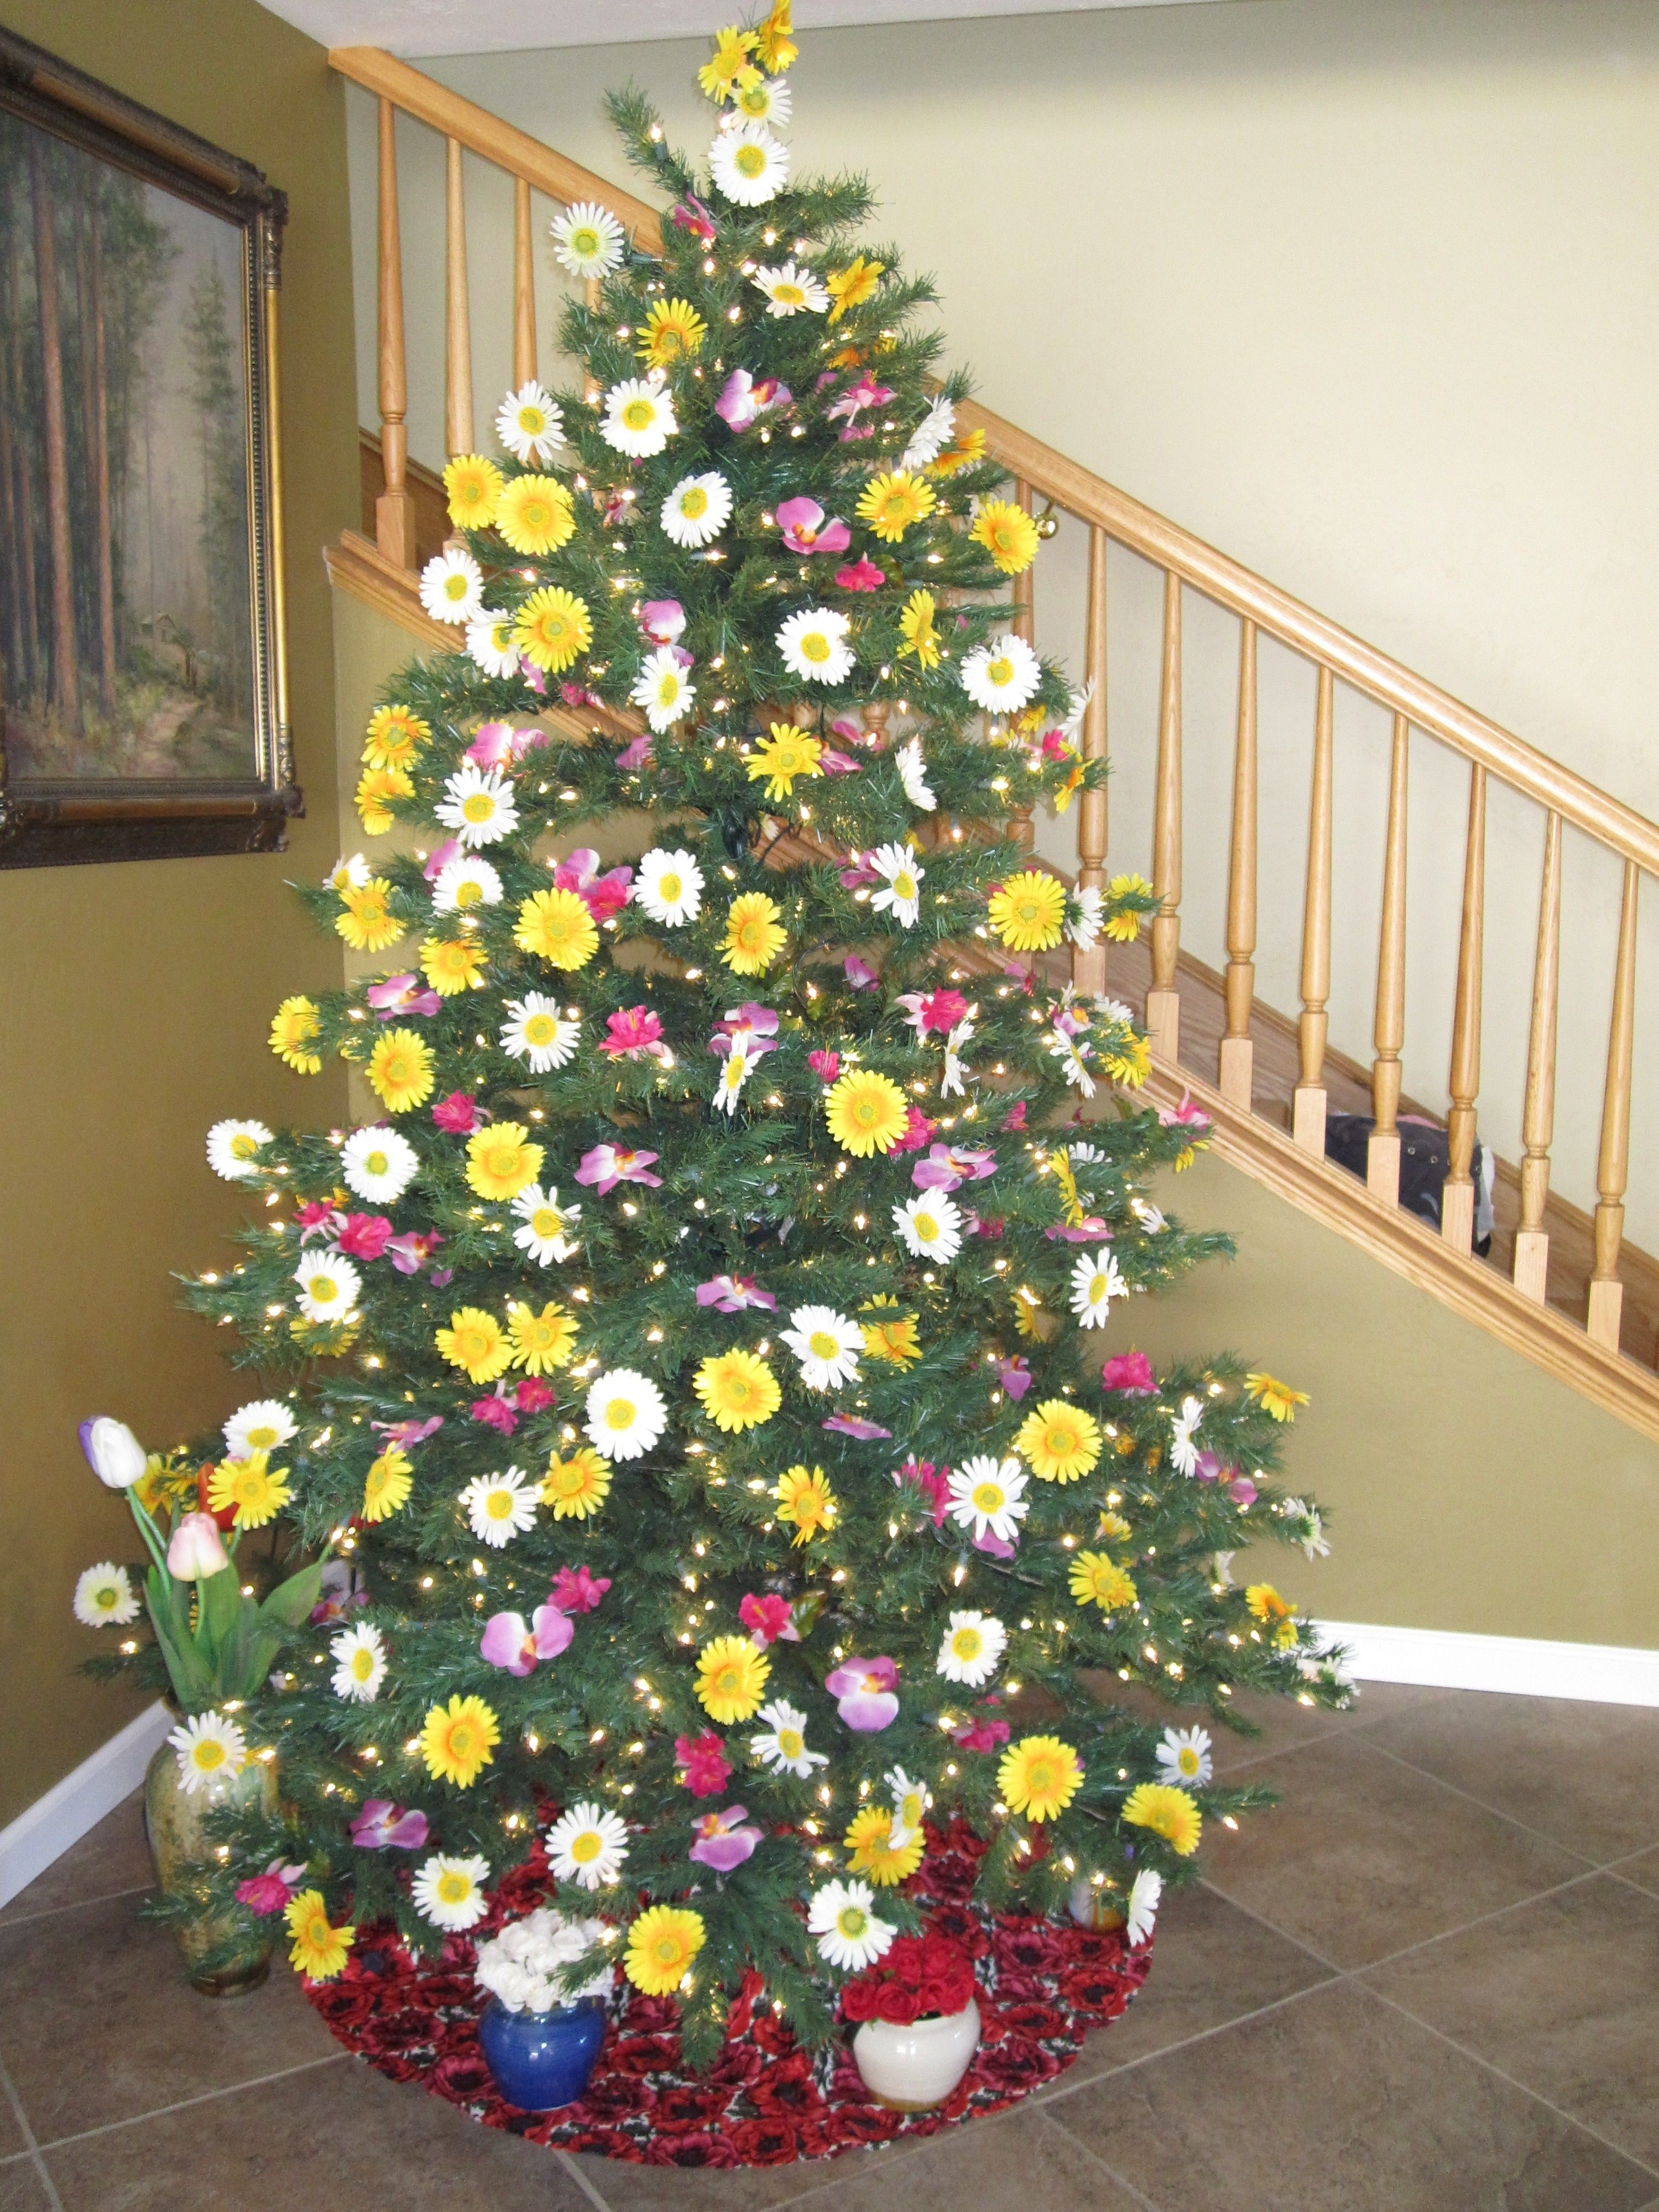 Flower Tree 2010 Holiday Tree Decorations Spring Tree Decorations Christmas Tree Flowers